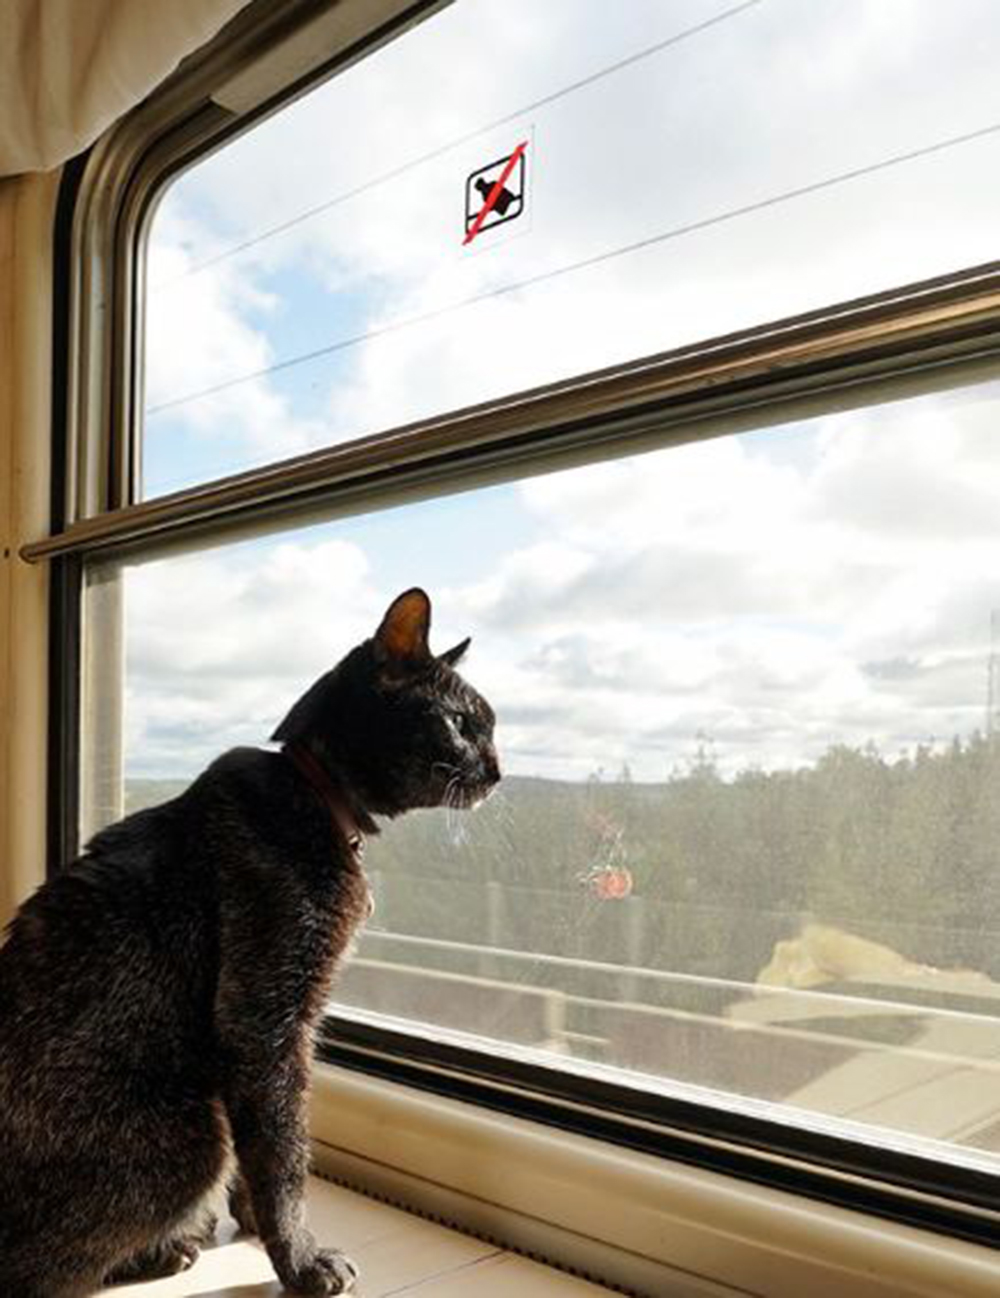 noro the cat at the window